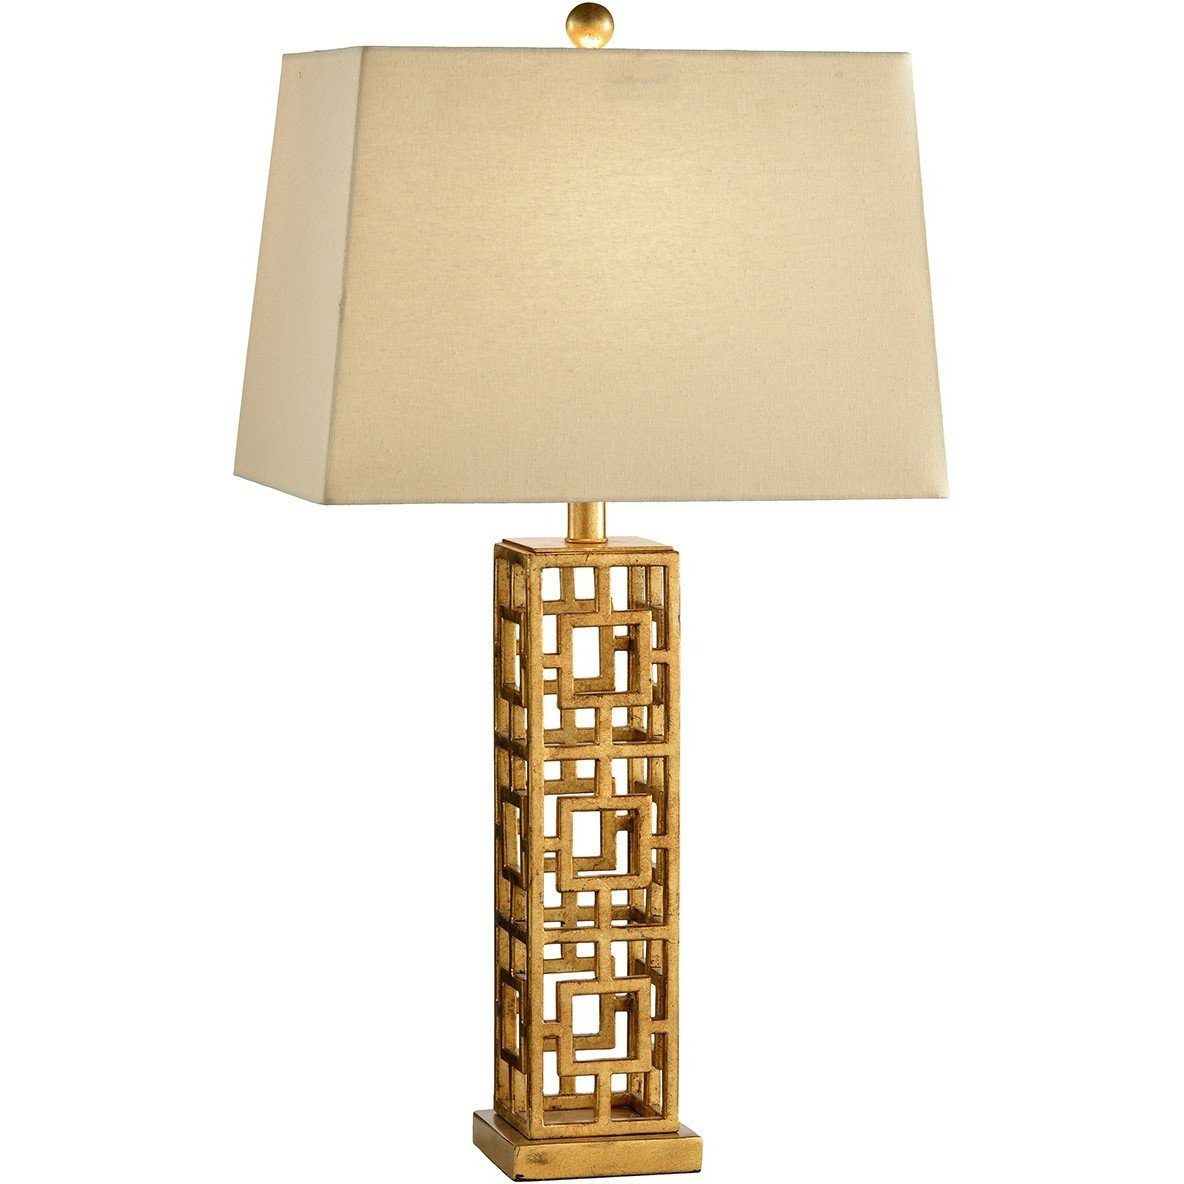 Chelsea House Squares In Squares Gold On Iron Table Lamp - LOVECUP